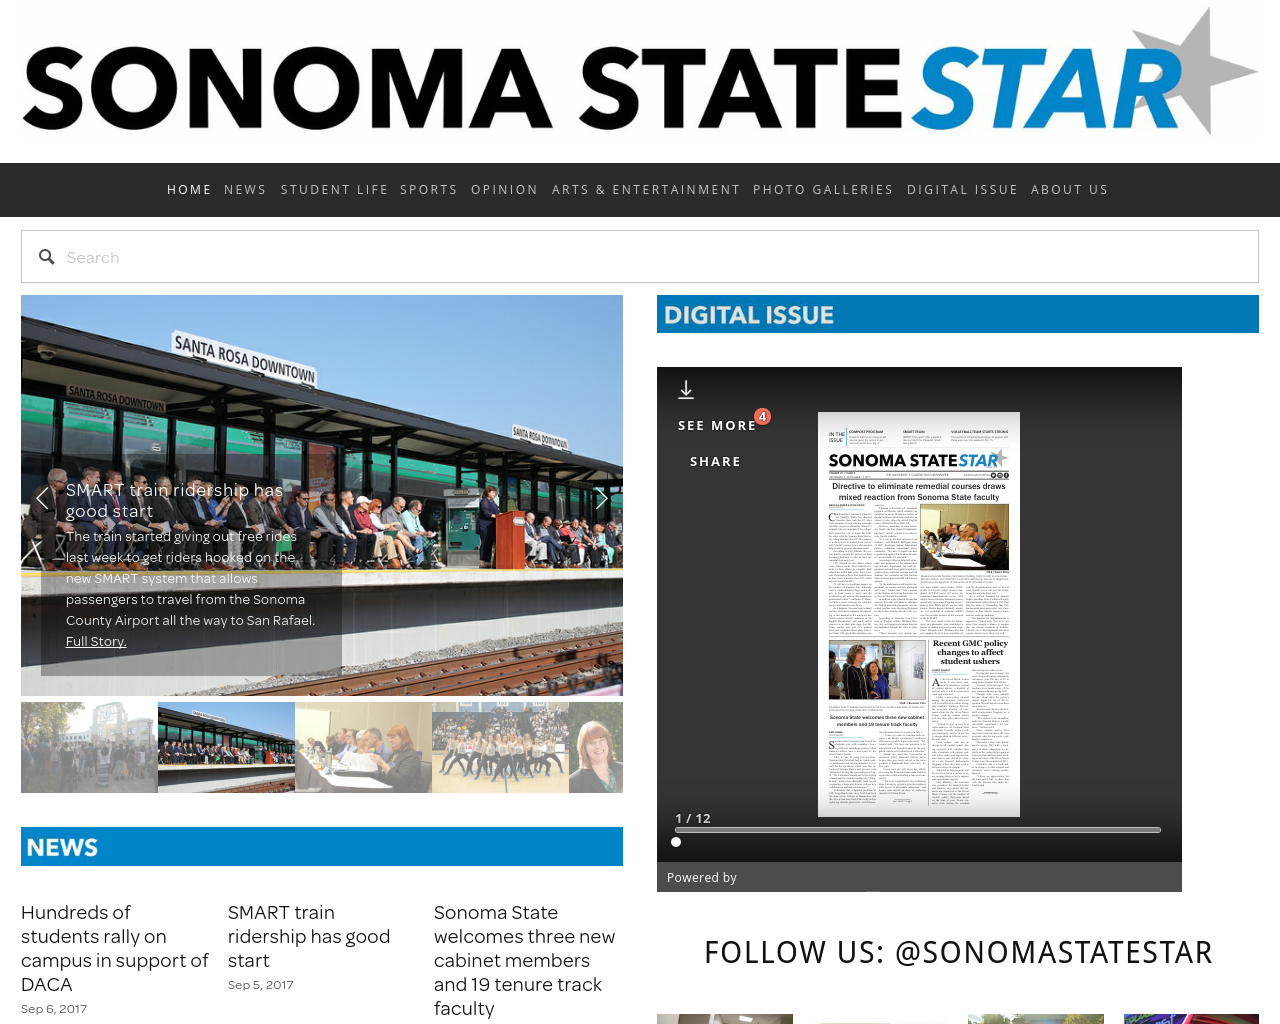 Sonoma-State-Star-Advertising-Reviews-Pricing